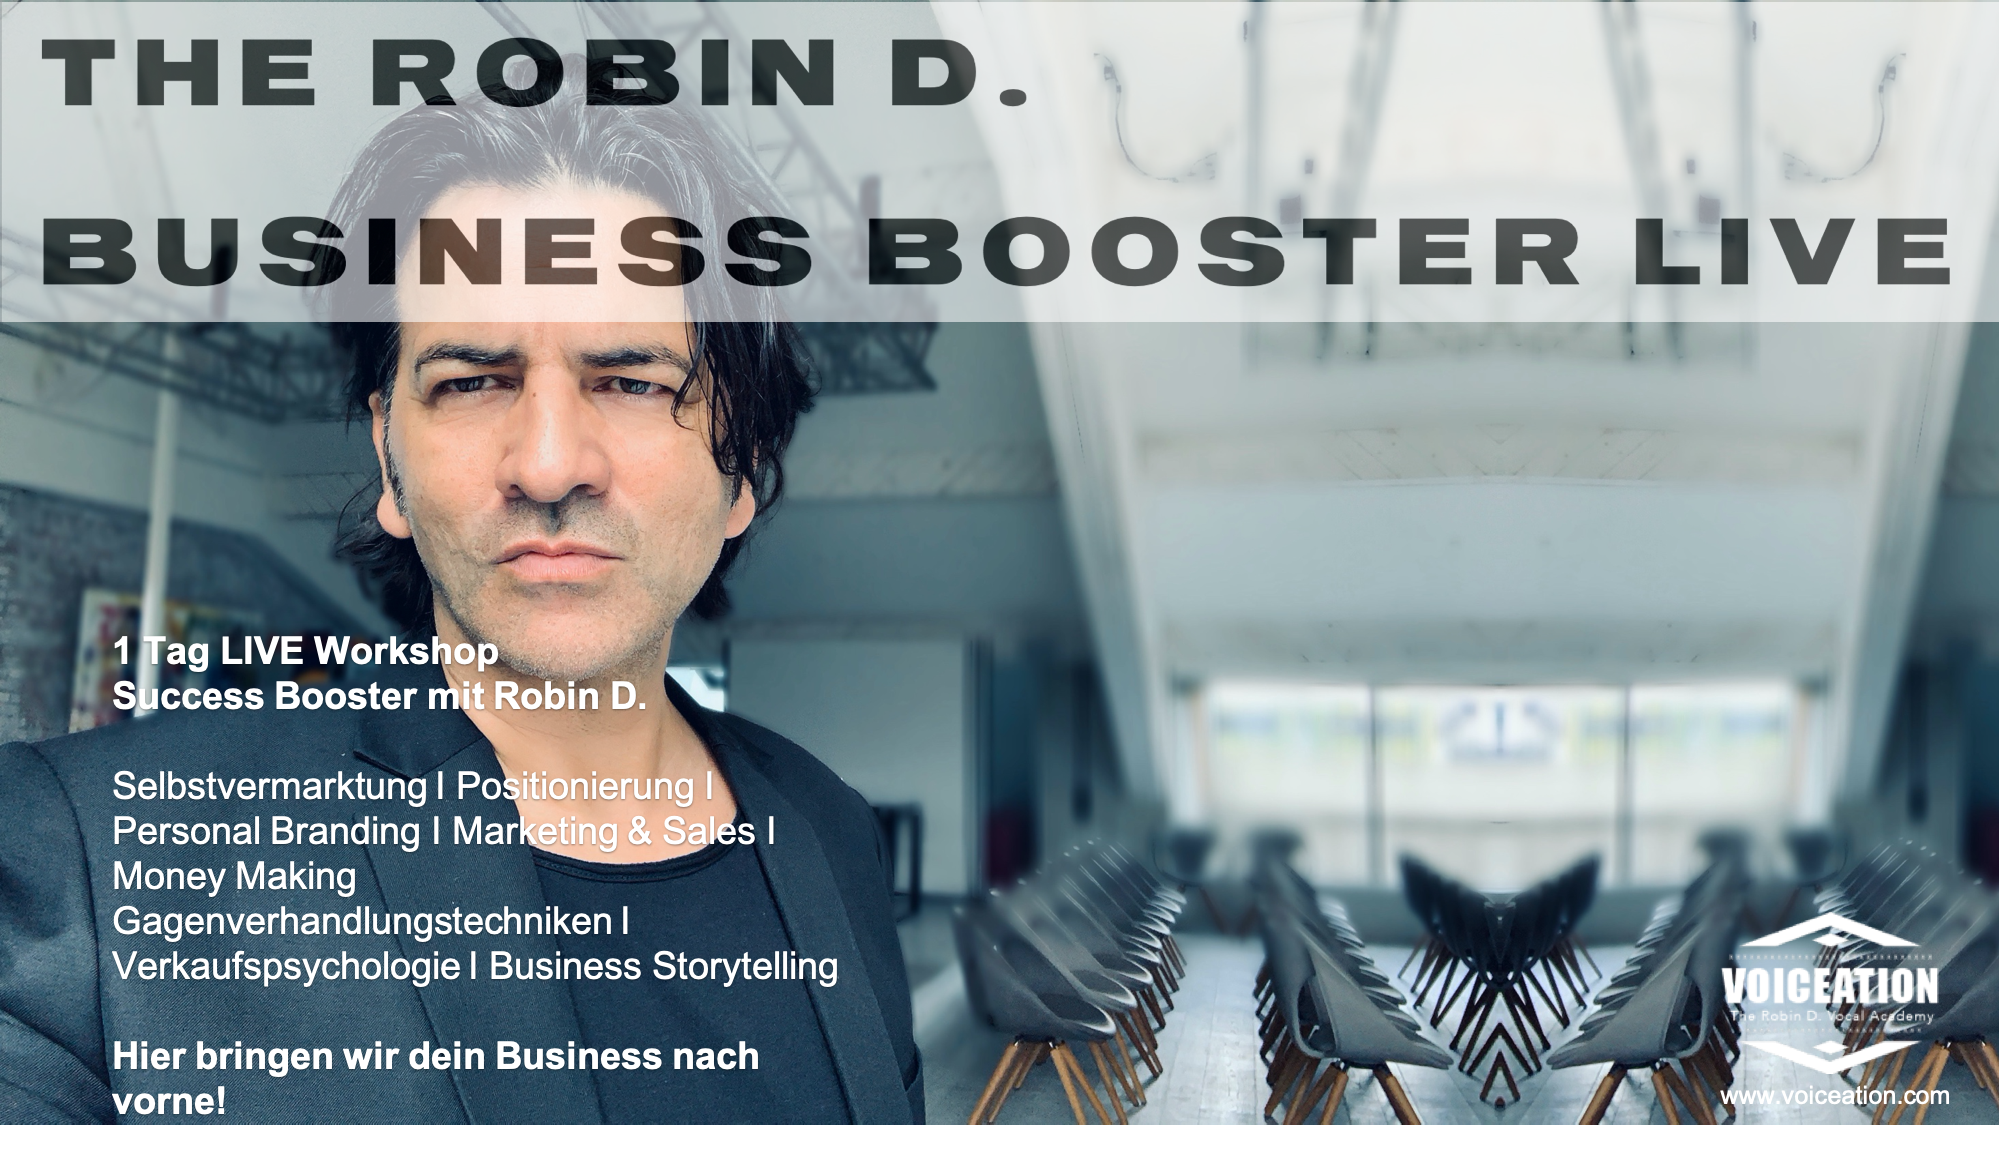 The Robin D. Business Booster LIVE